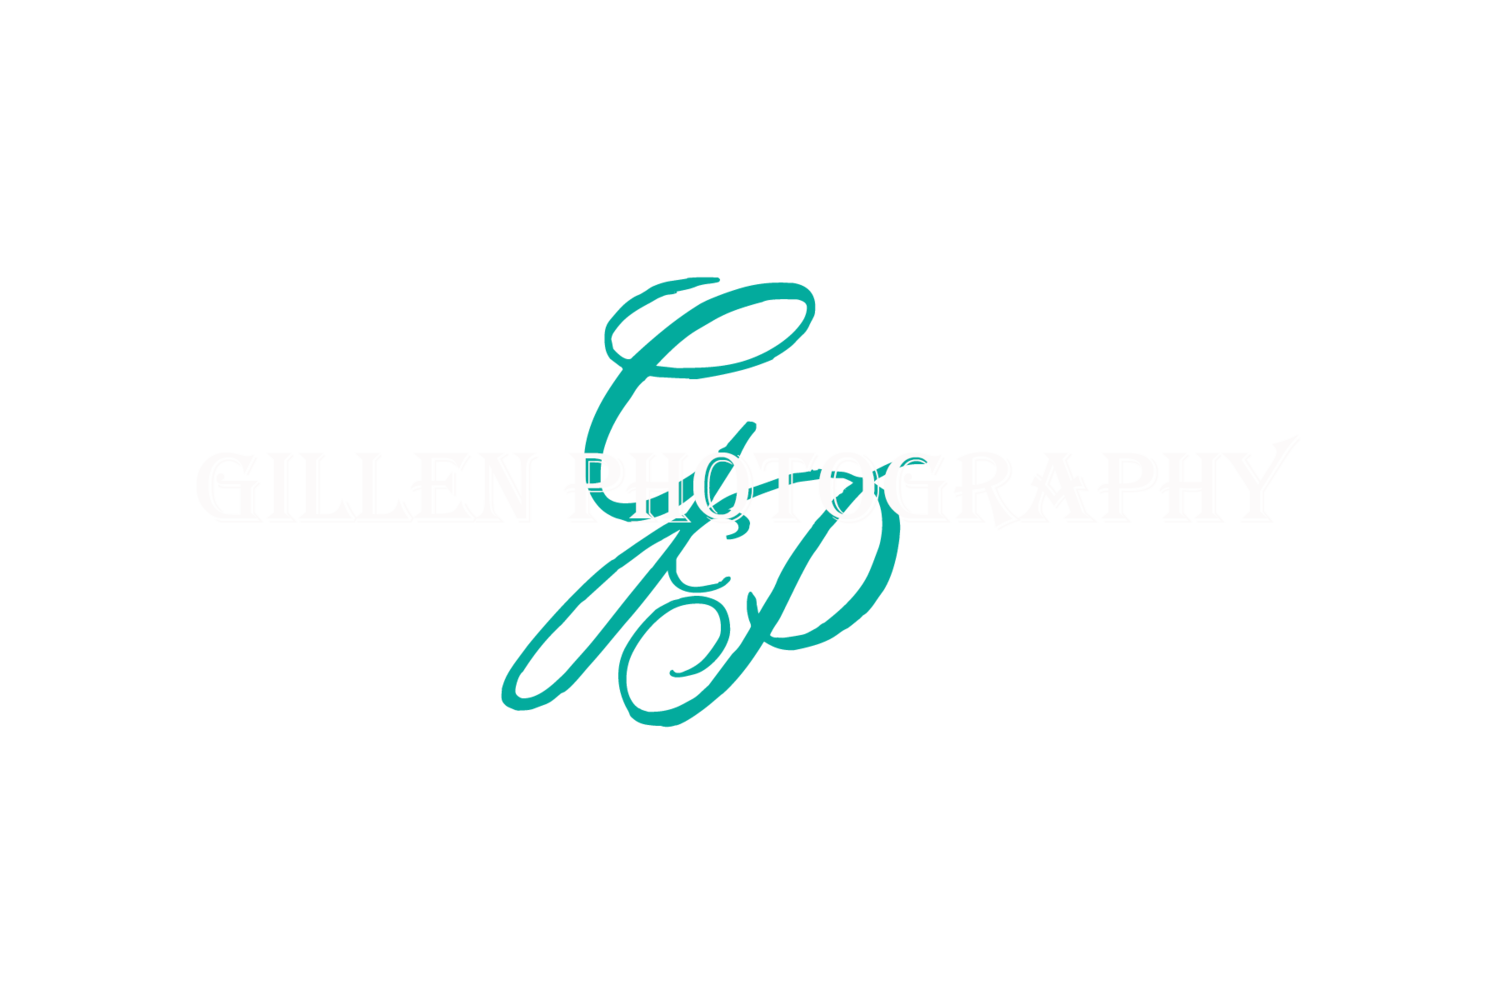 Gillen Photography